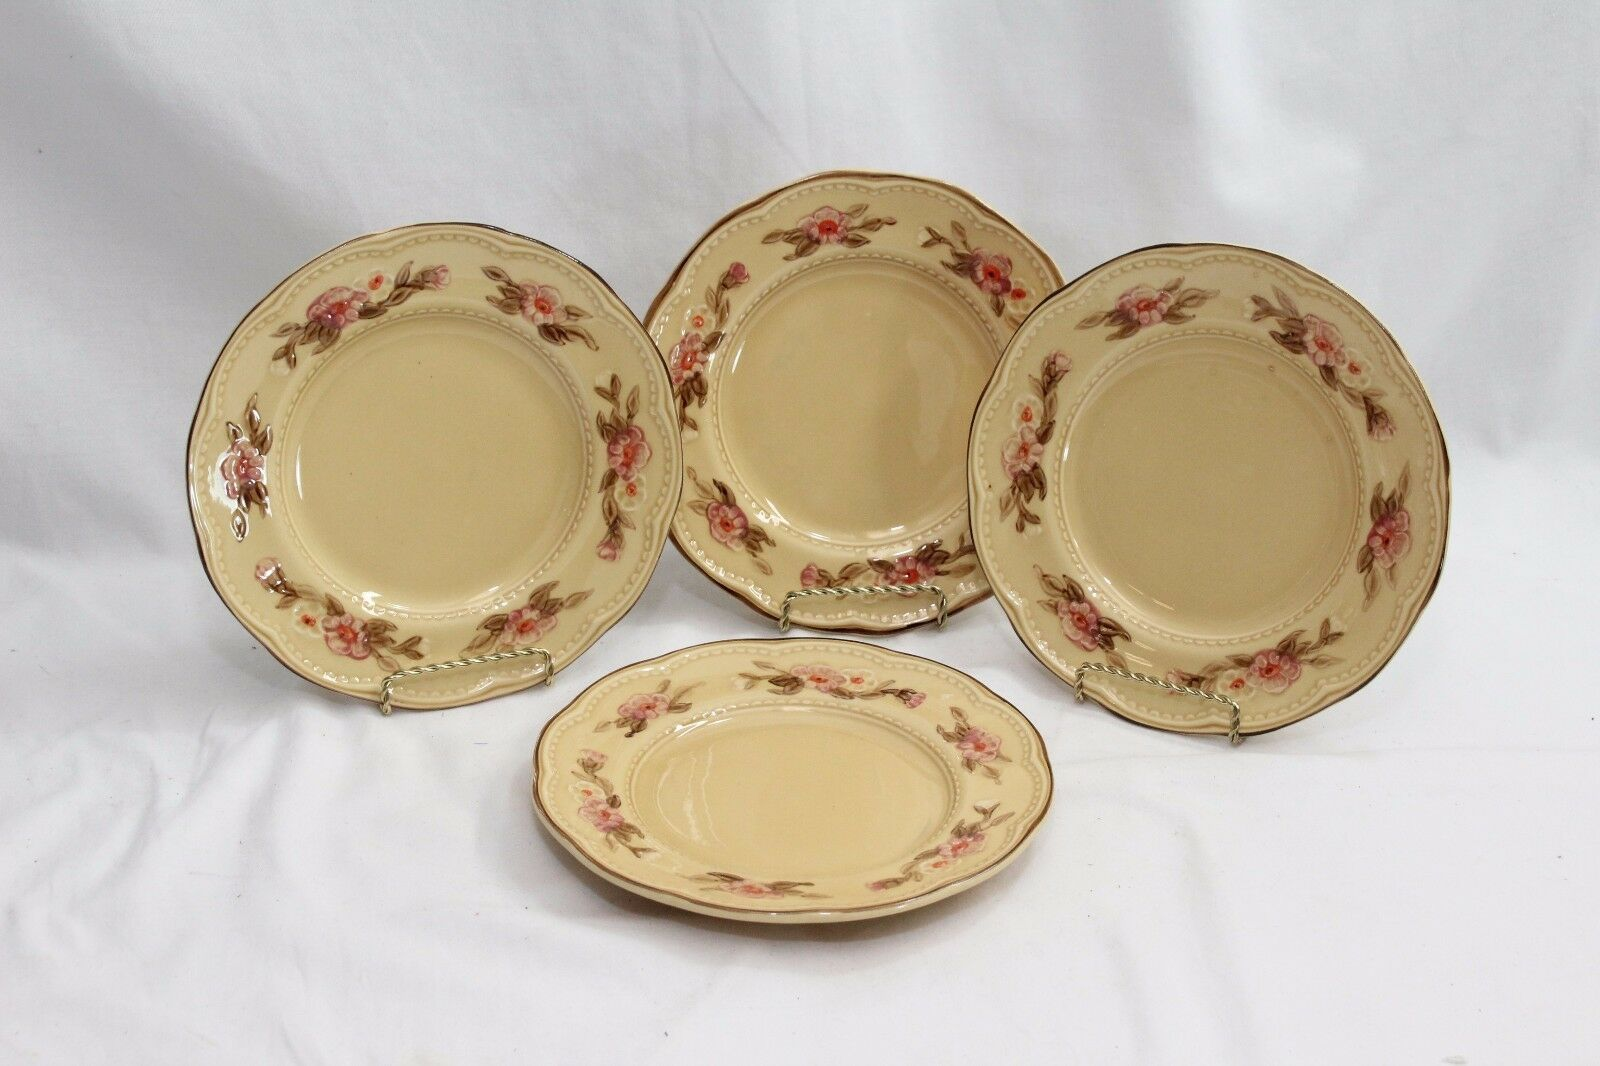 Franciscan Rosette Salad Plates and Soup Cereal Bowls Set of 8